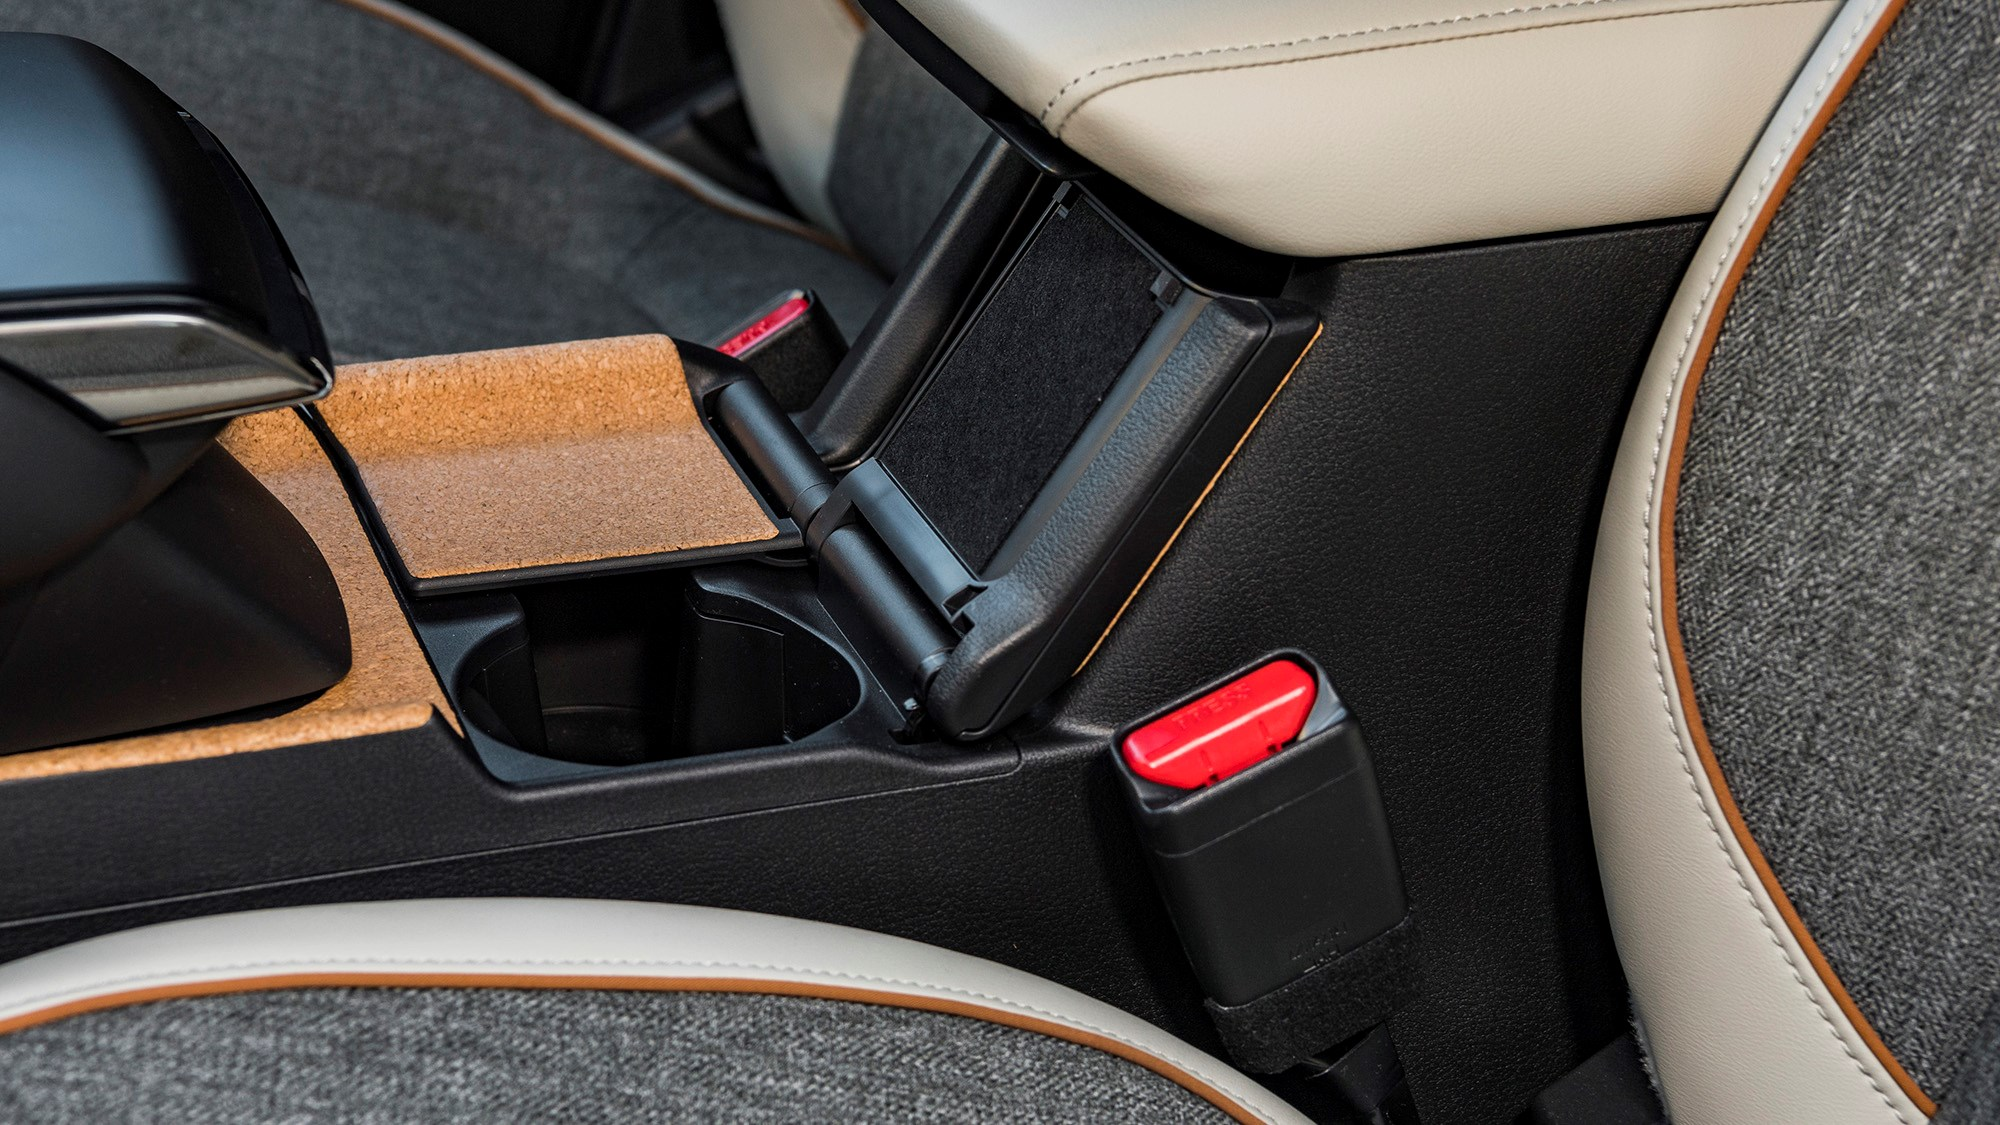 Cork cupholder covers